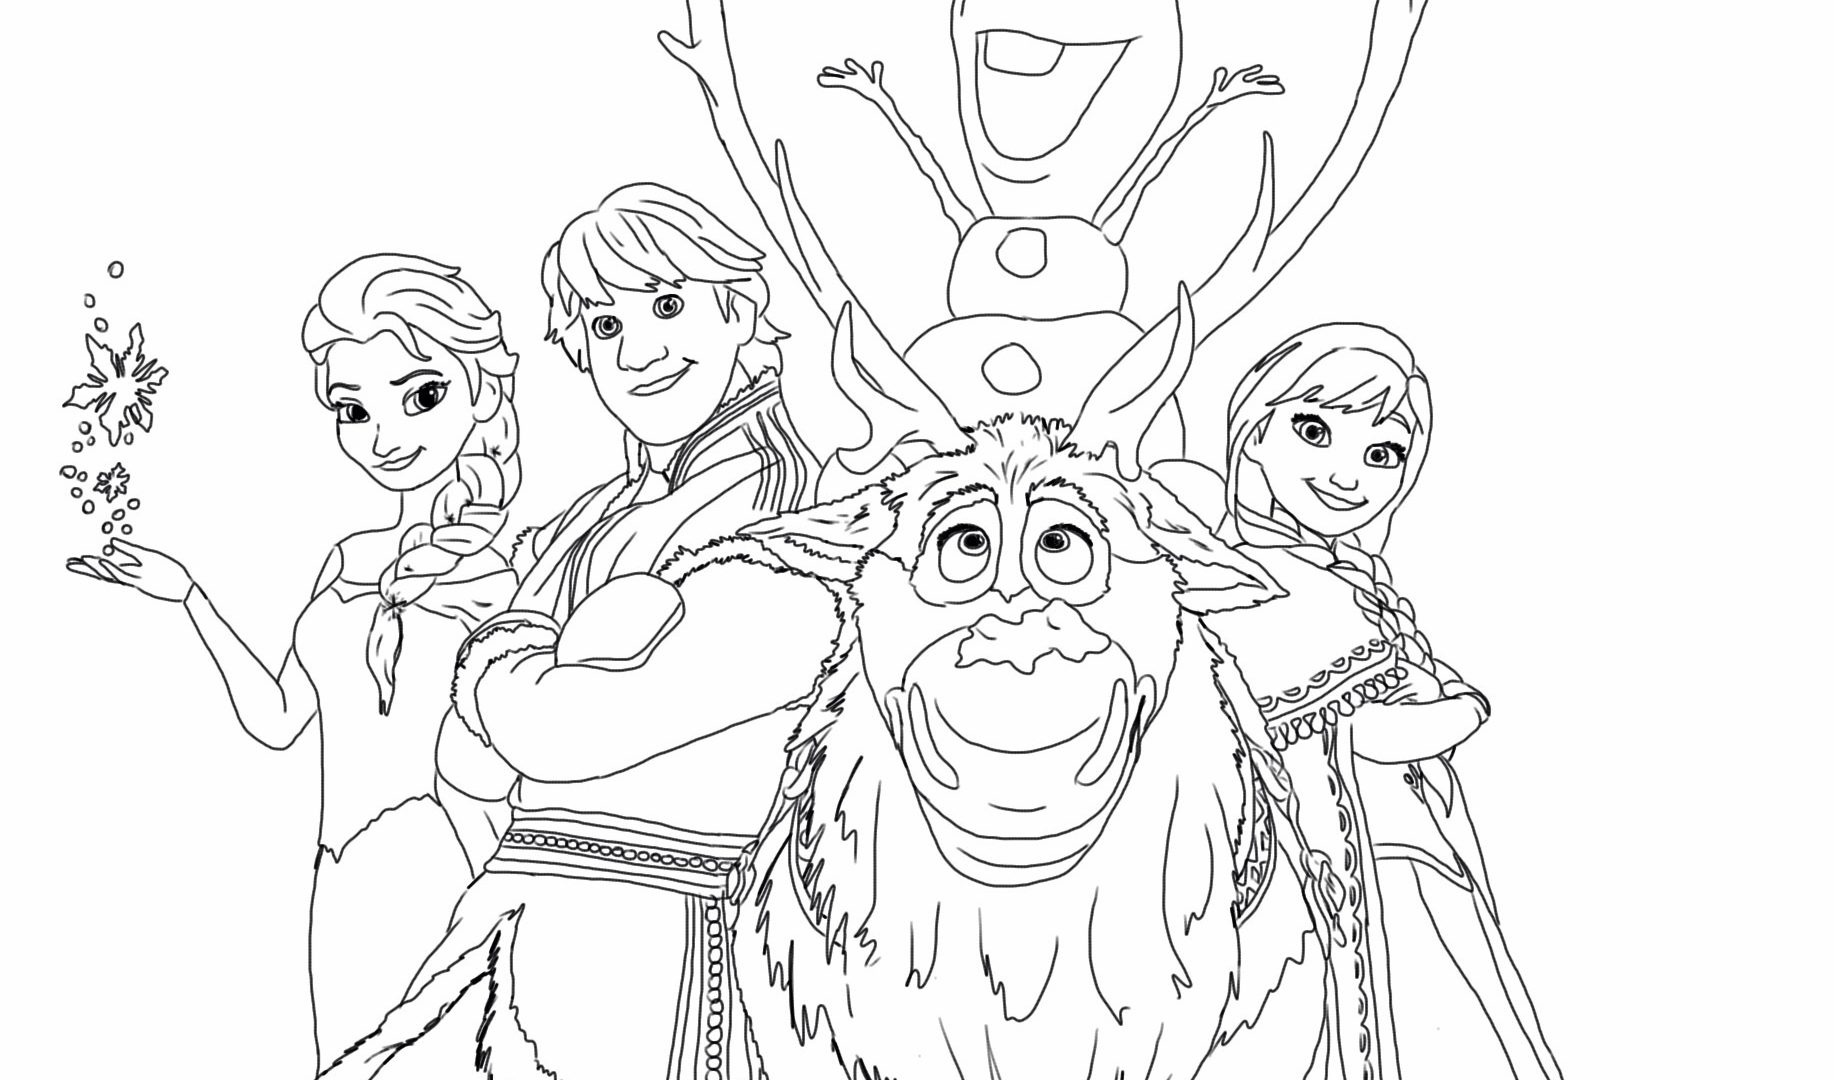 Coloring Ideas : Printable Frozen Coloring Pages O Olaf Ideas Cool - Free Printable Frozen Coloring Pages